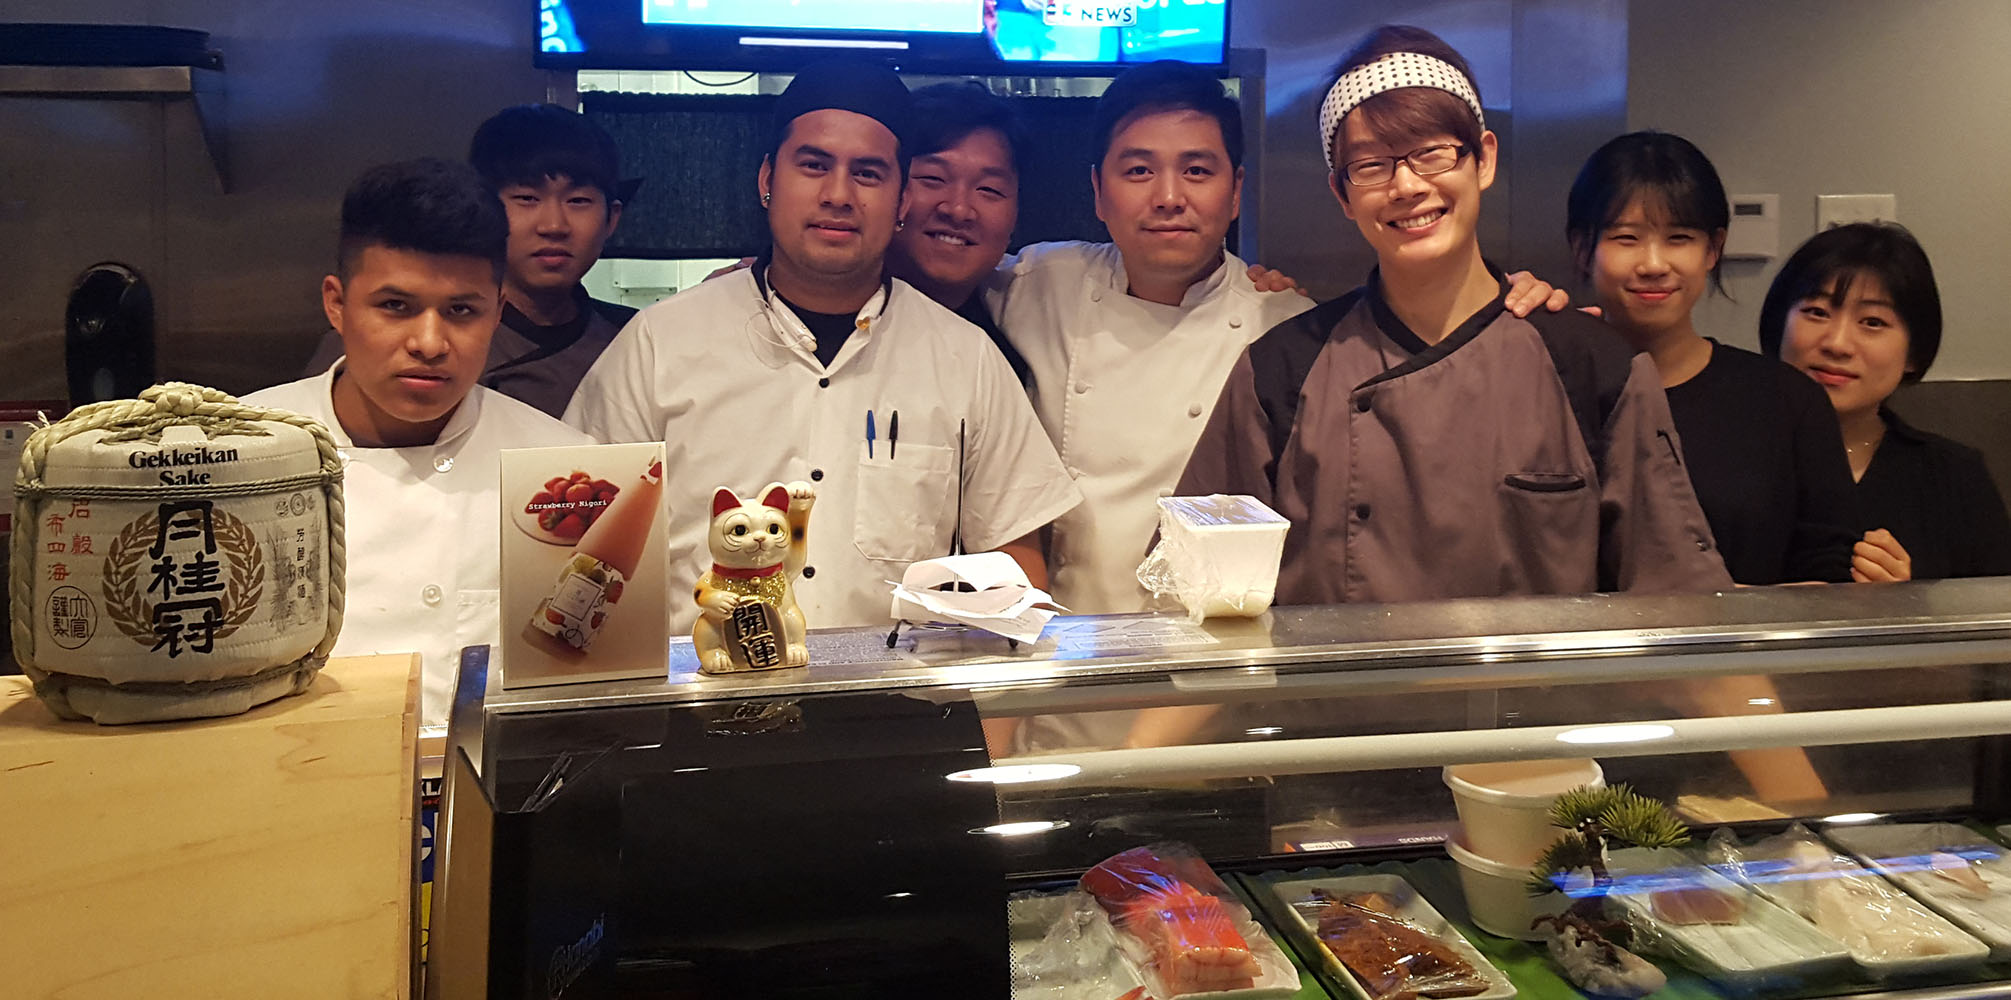 Owner Andy S. Kim and Team, Hanabi Sushi & Rolls, Village Square West Sahara, Las Vegas